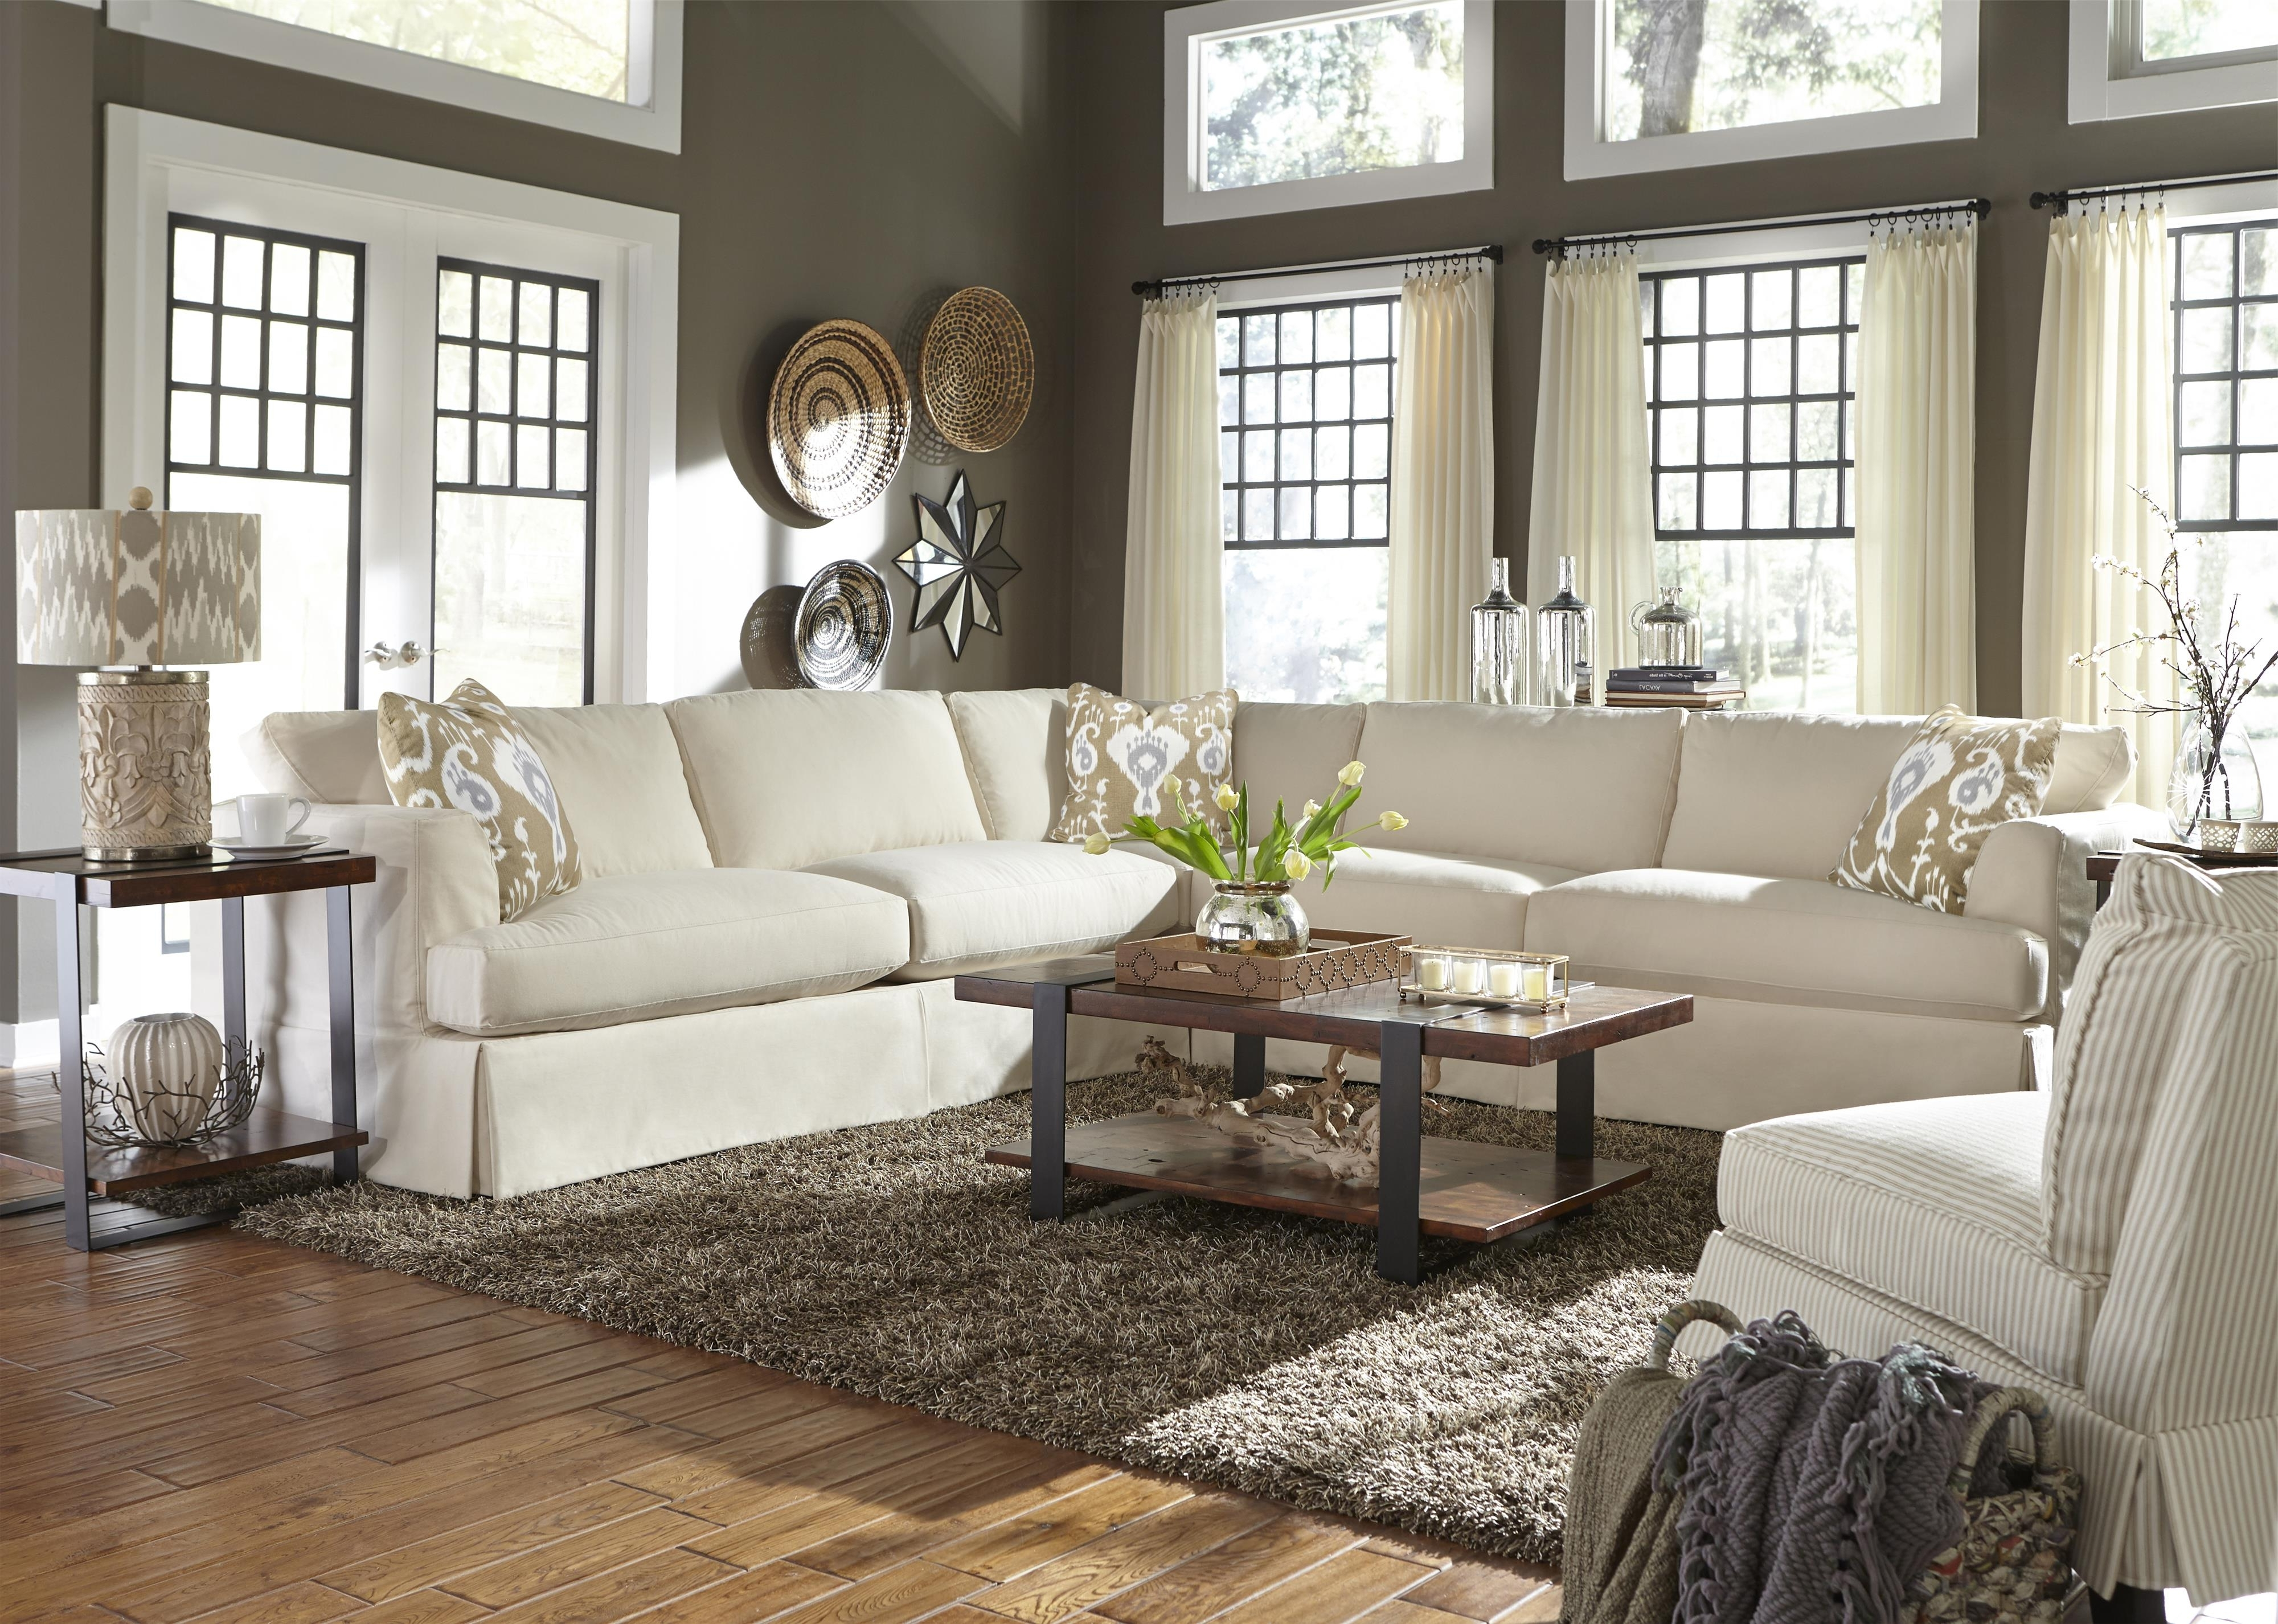 Klaussner Bentley Casual Sectional Sofa With Slip Cover (Gallery 14 of 20)